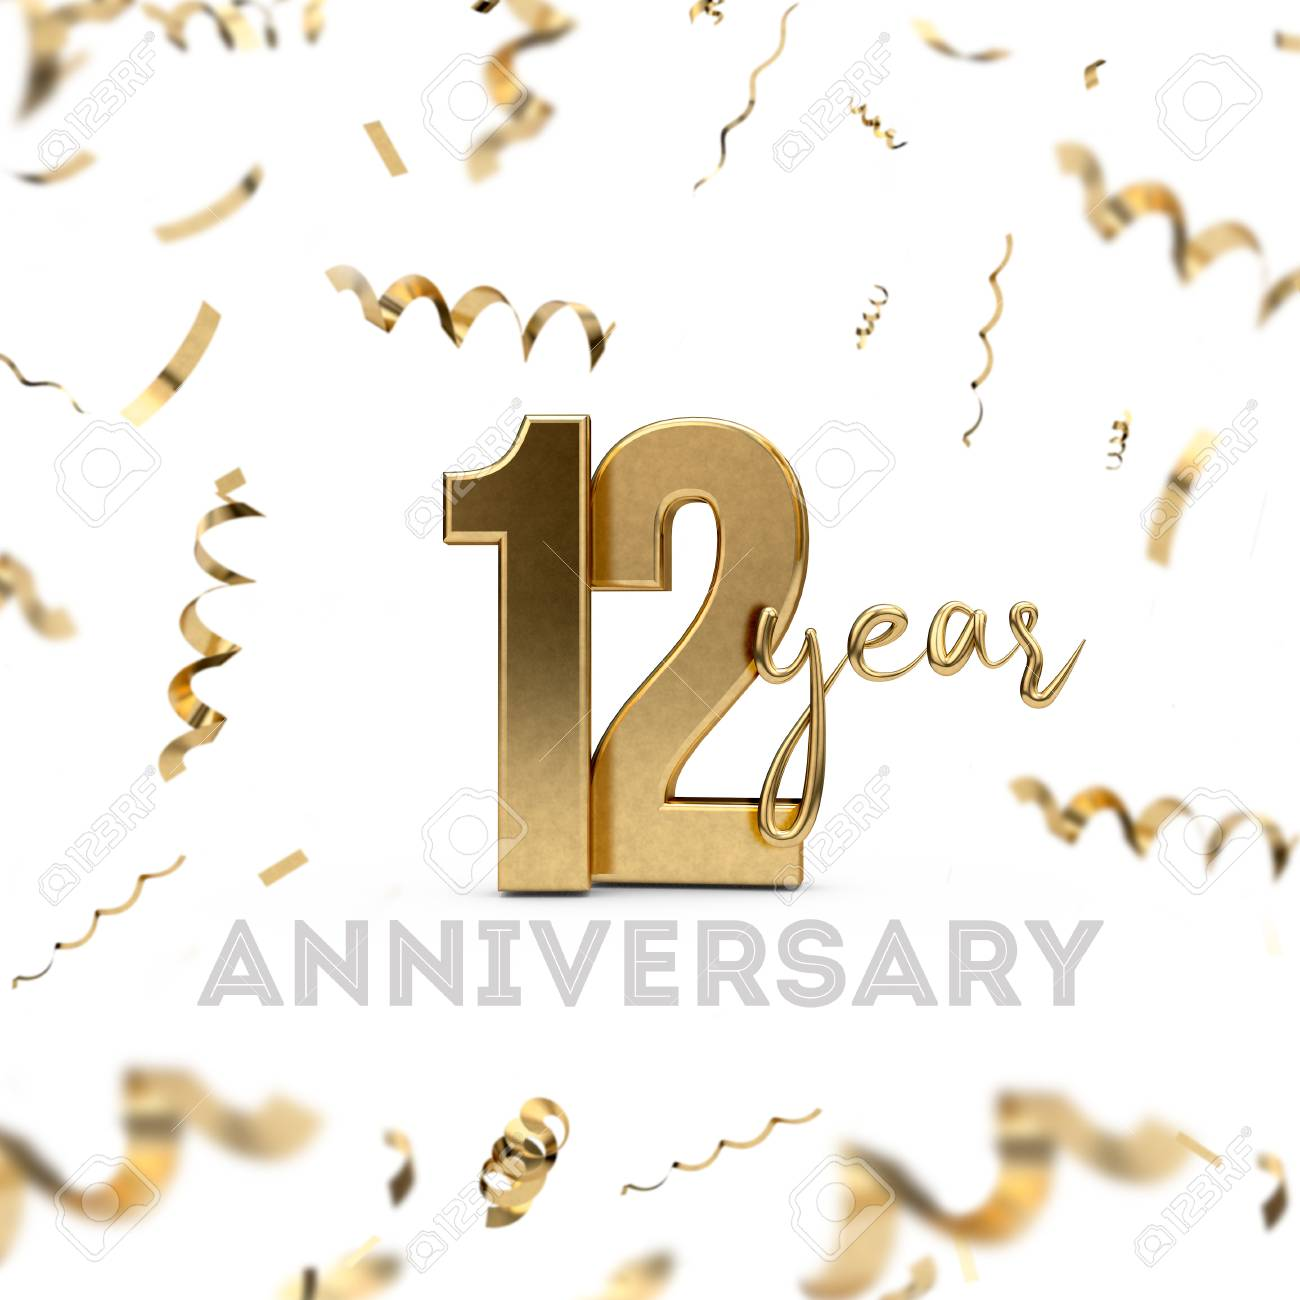 12 Year Anniversary Celebration Gold Number With Golden Confetti Stock Photo Picture And Royalty Free Image Image 103815782